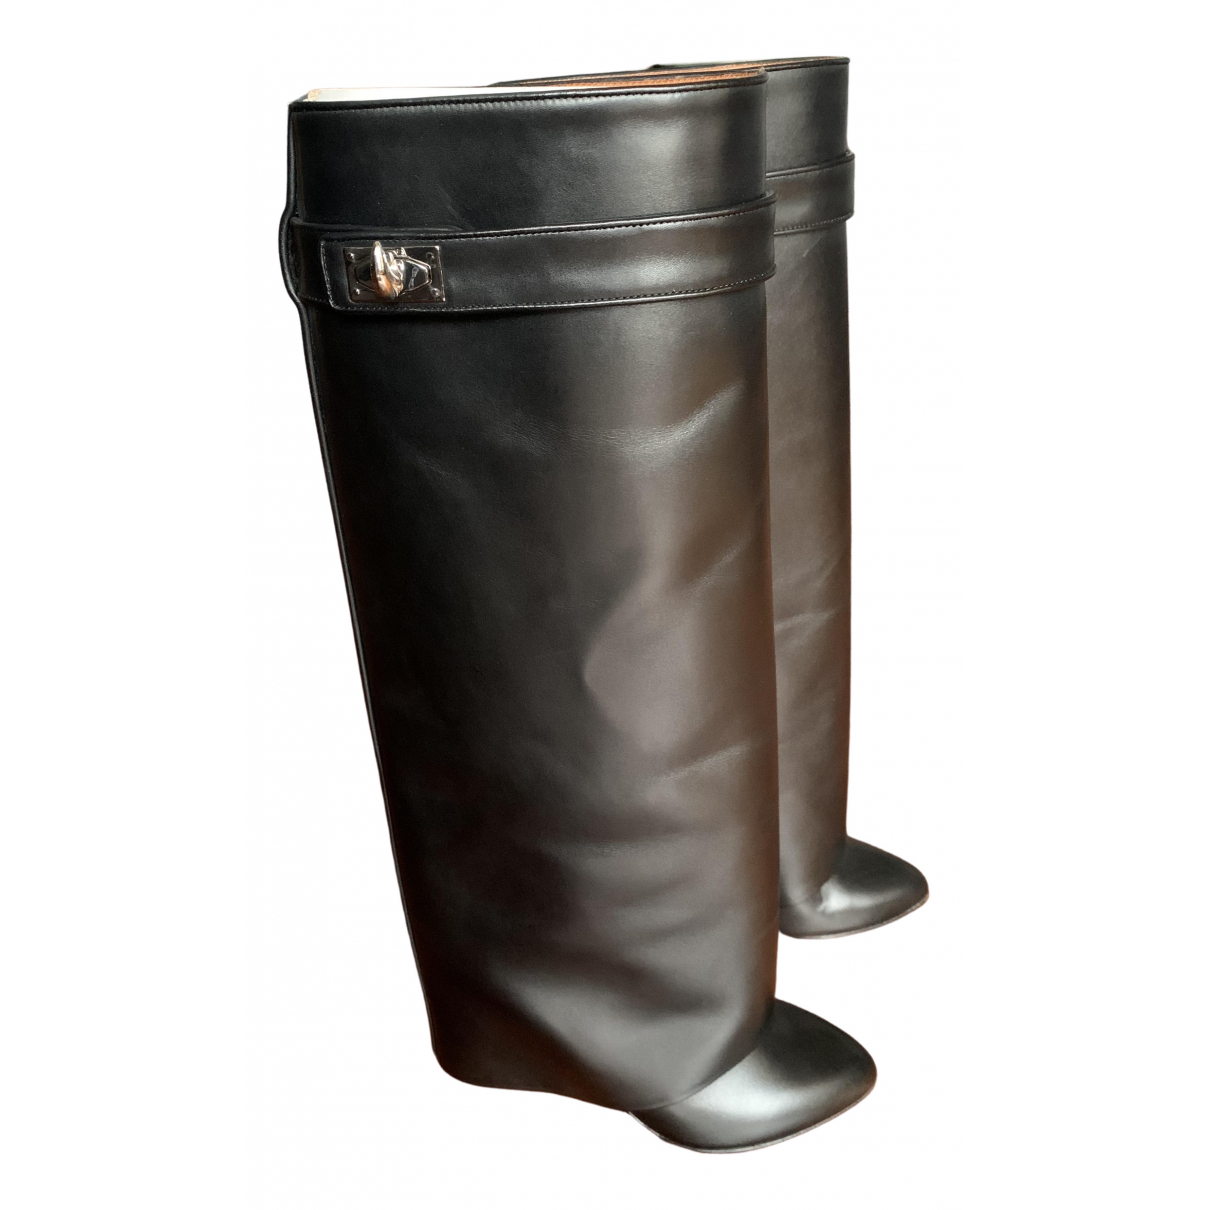 Givenchy Shark Black Leather Boots for Women 38 EU